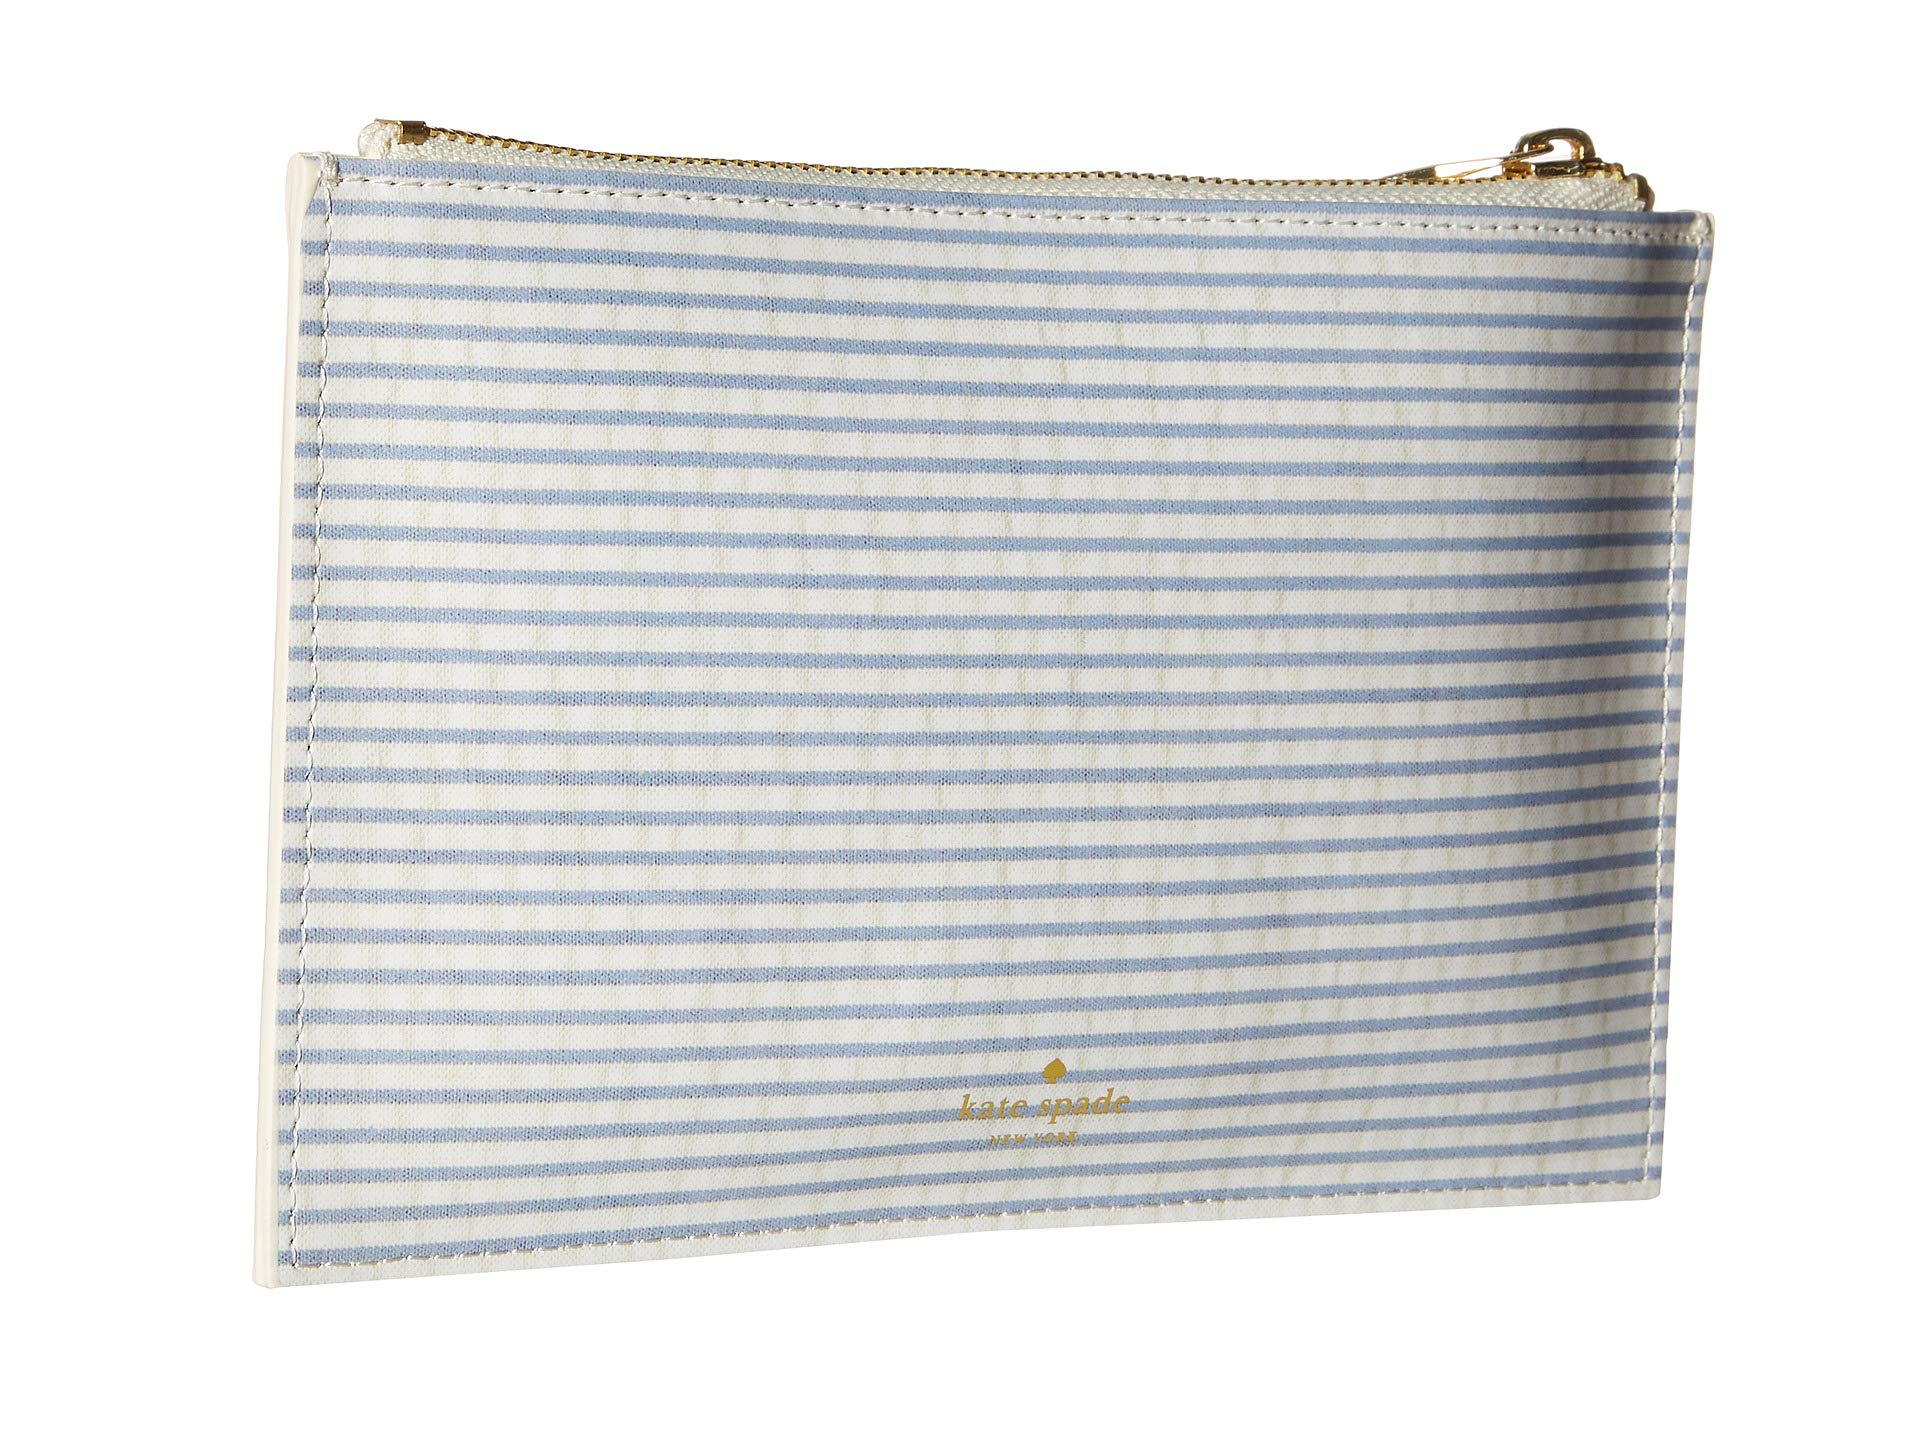 Seersucker York Pencil Pouch Spade New Navy Kate xvwq1RtP